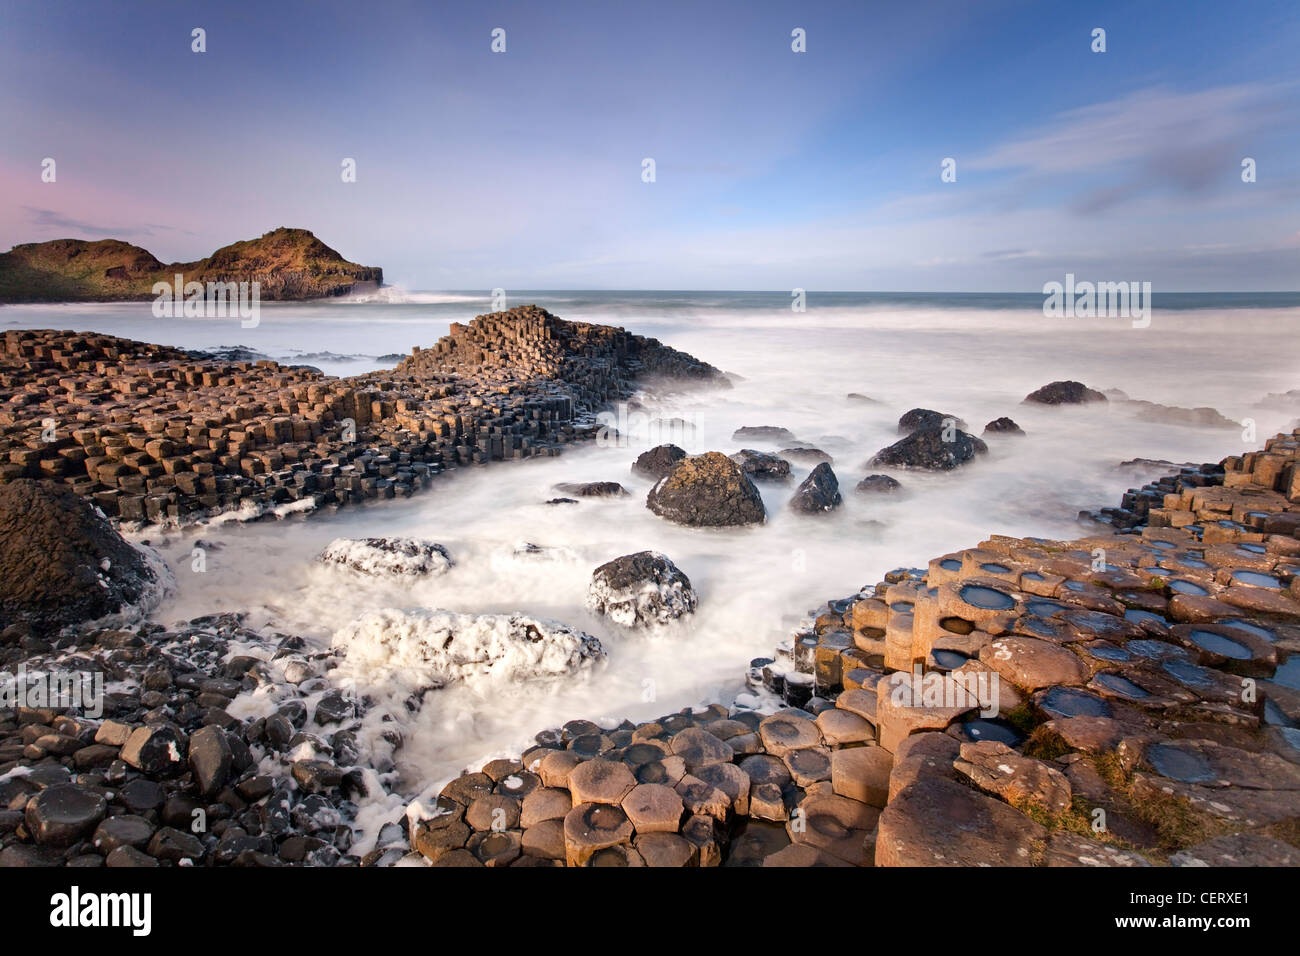 Giants Causeway captured at sunset. Northern Ireland. - Stock Image